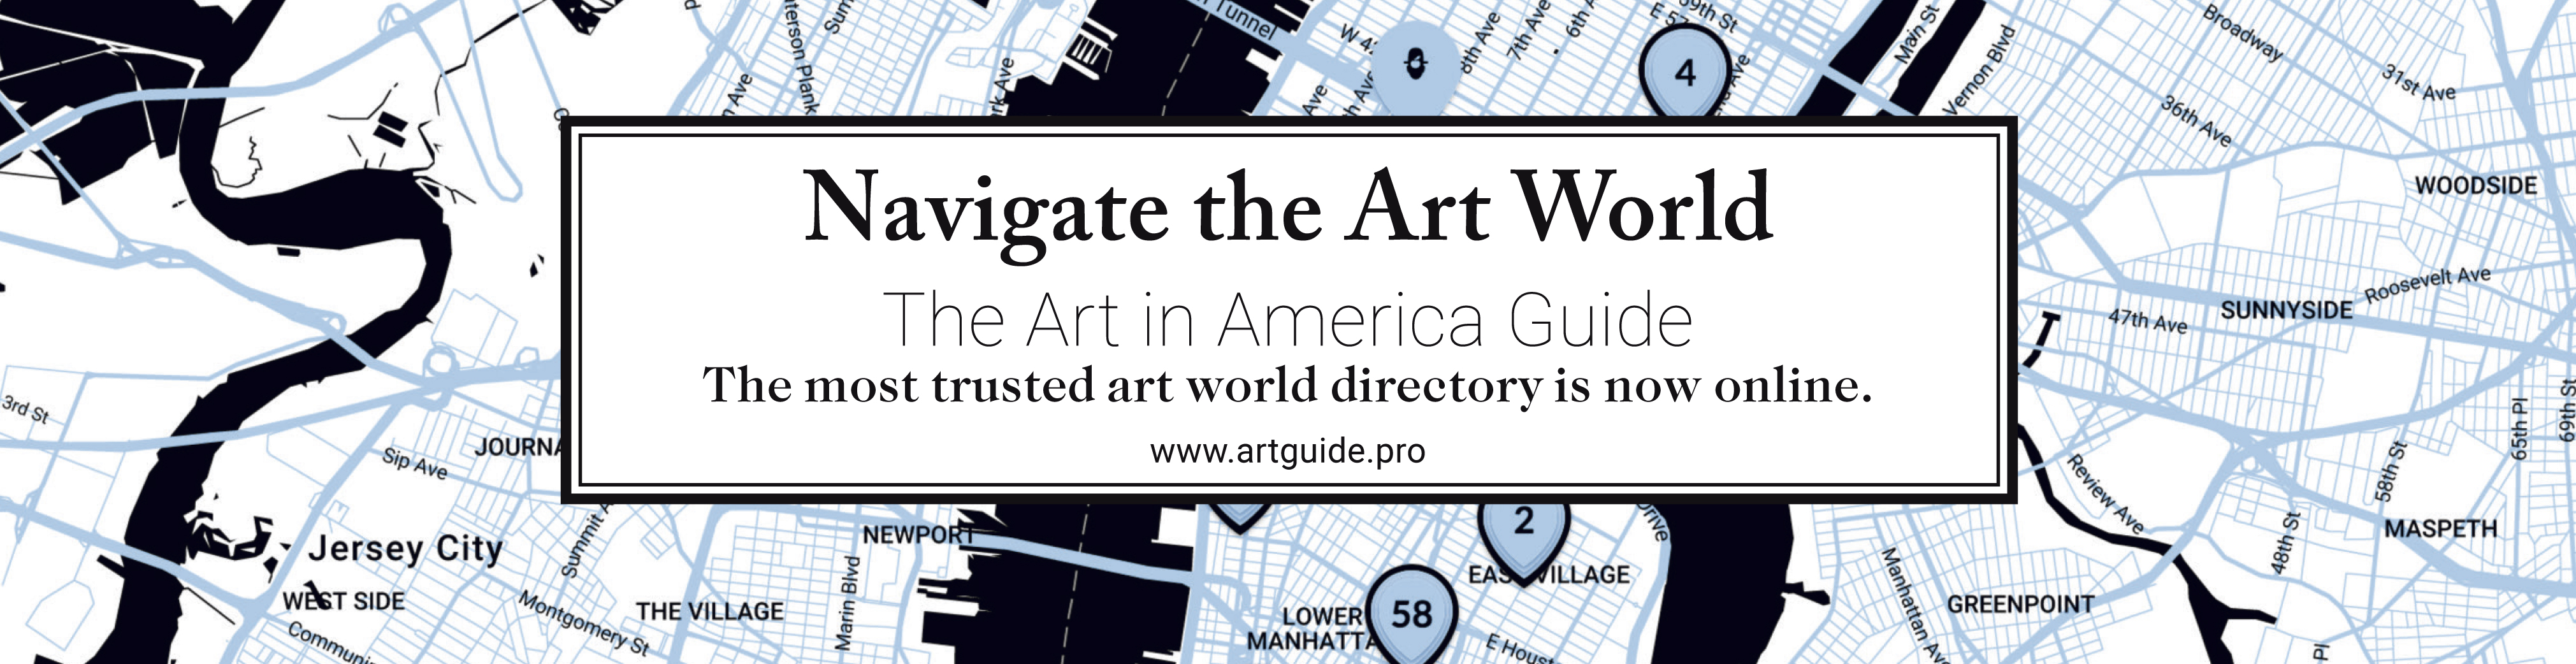 The Art in America Guide